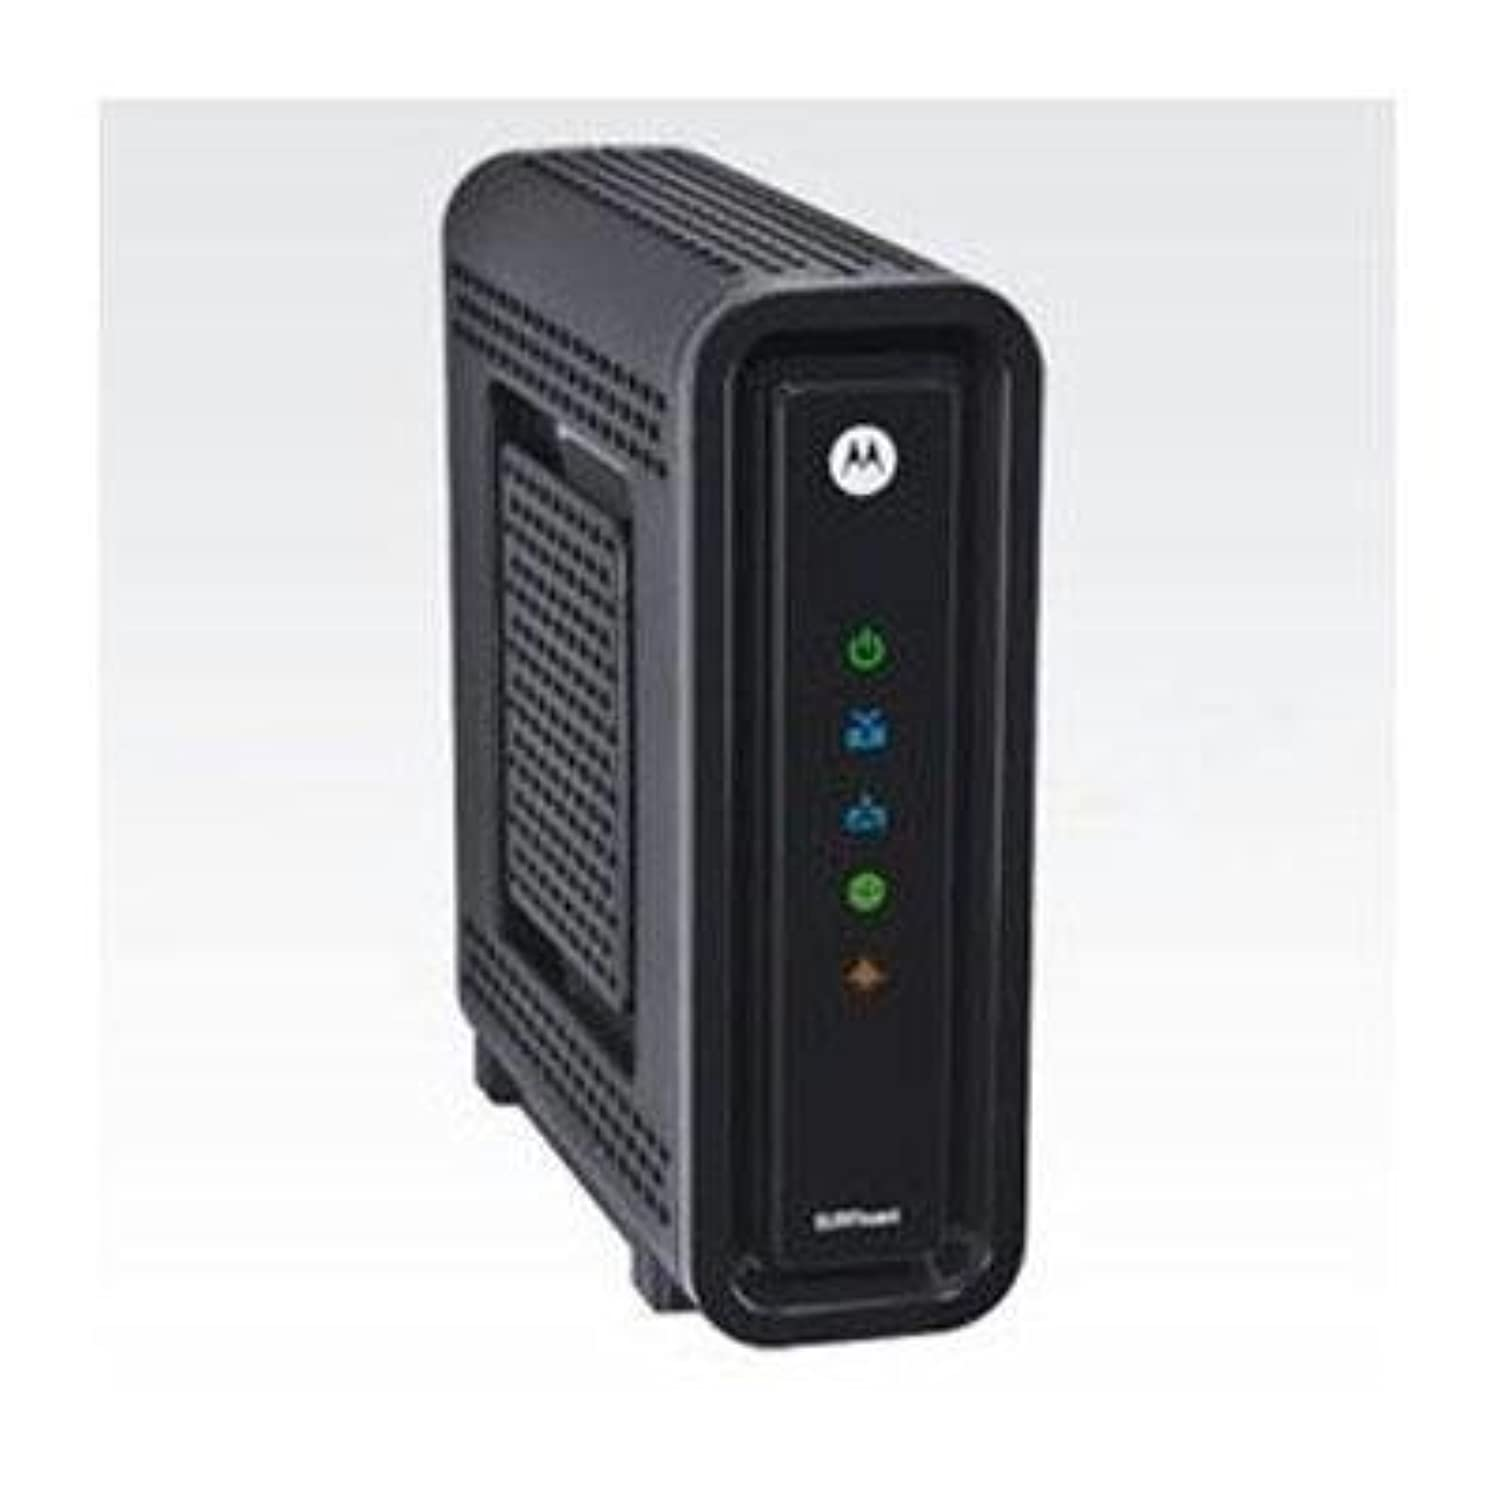 Arris/Motorola SB6121 DOCSIS 3.0 Cable Modem in Non-Retail Packaging (Brown Box) [並行輸入品]